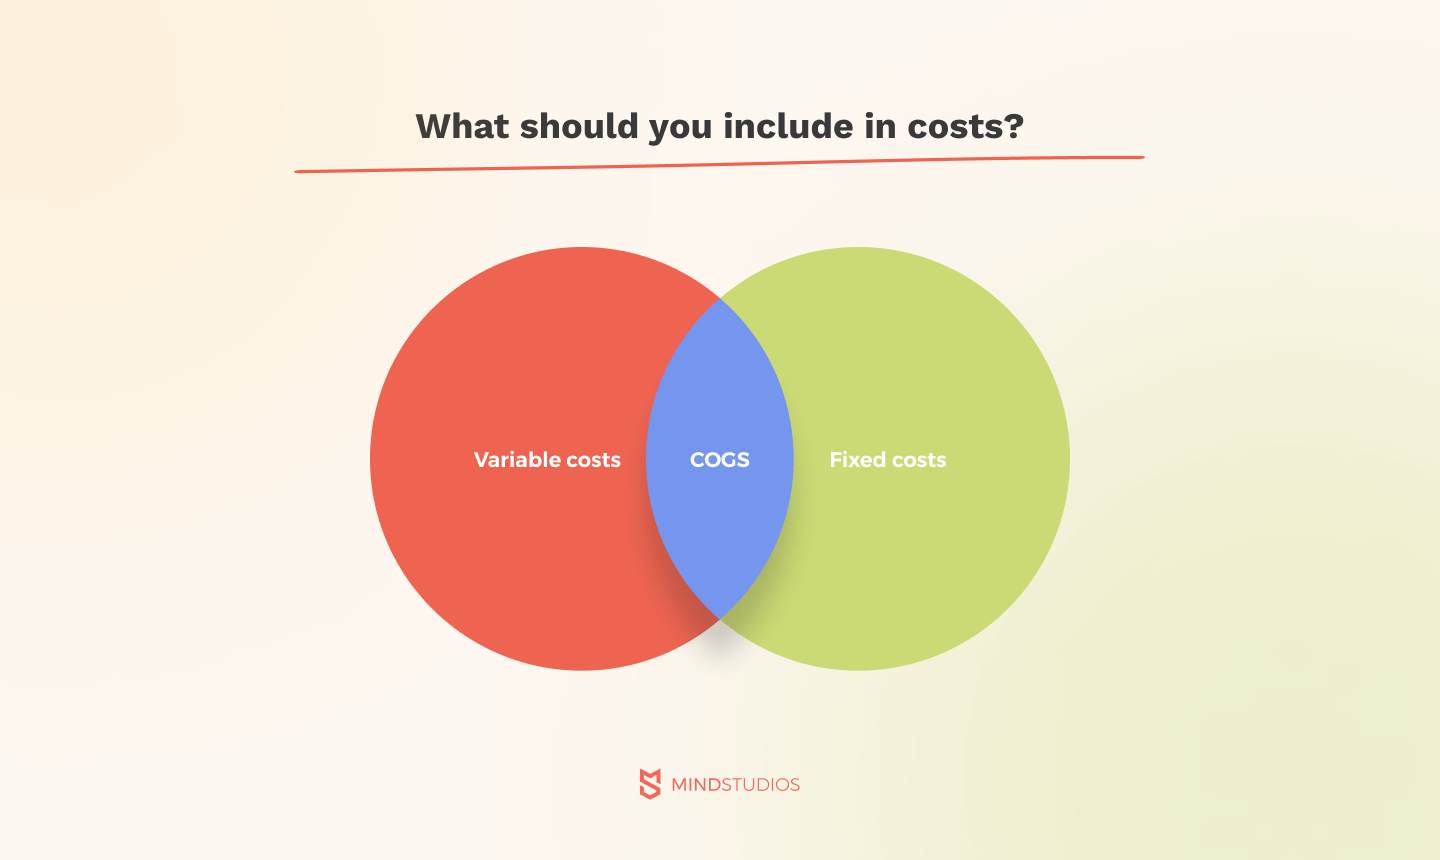 What should you include in costs